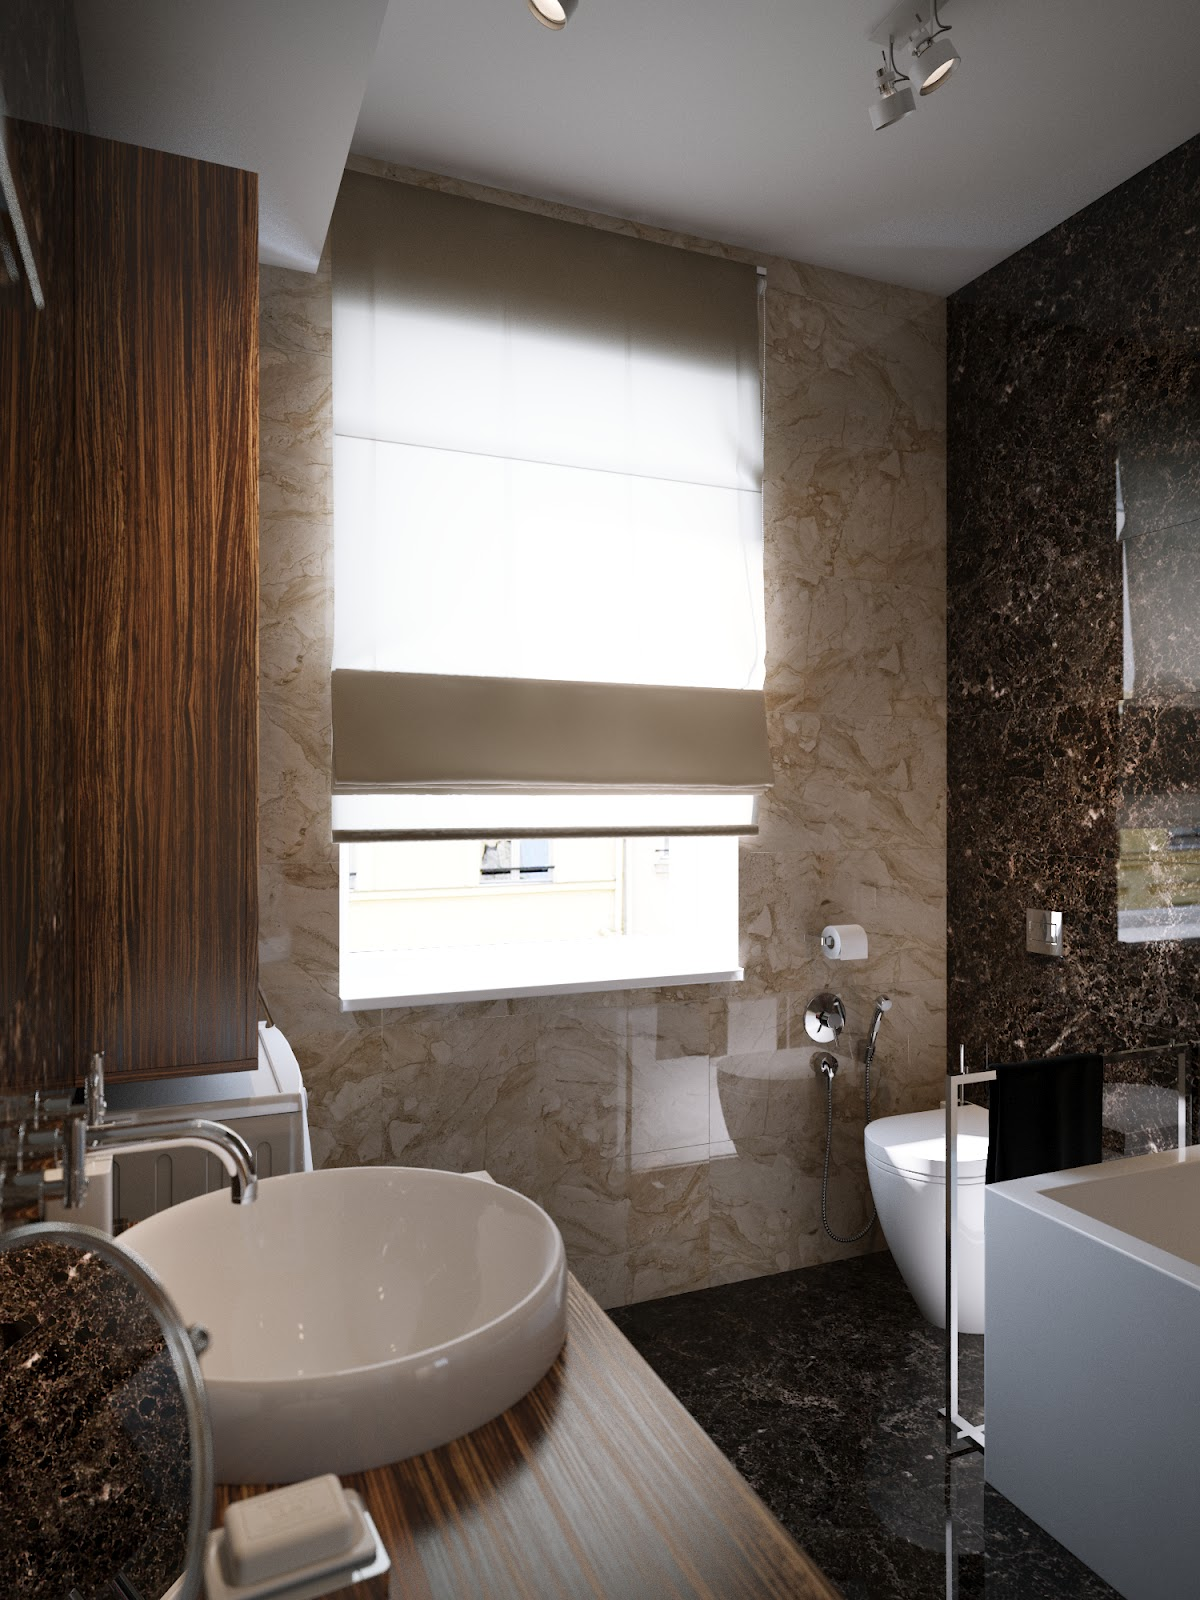 Modern bathroom design scheme interior design ideas for Pictures of contemporary bathrooms